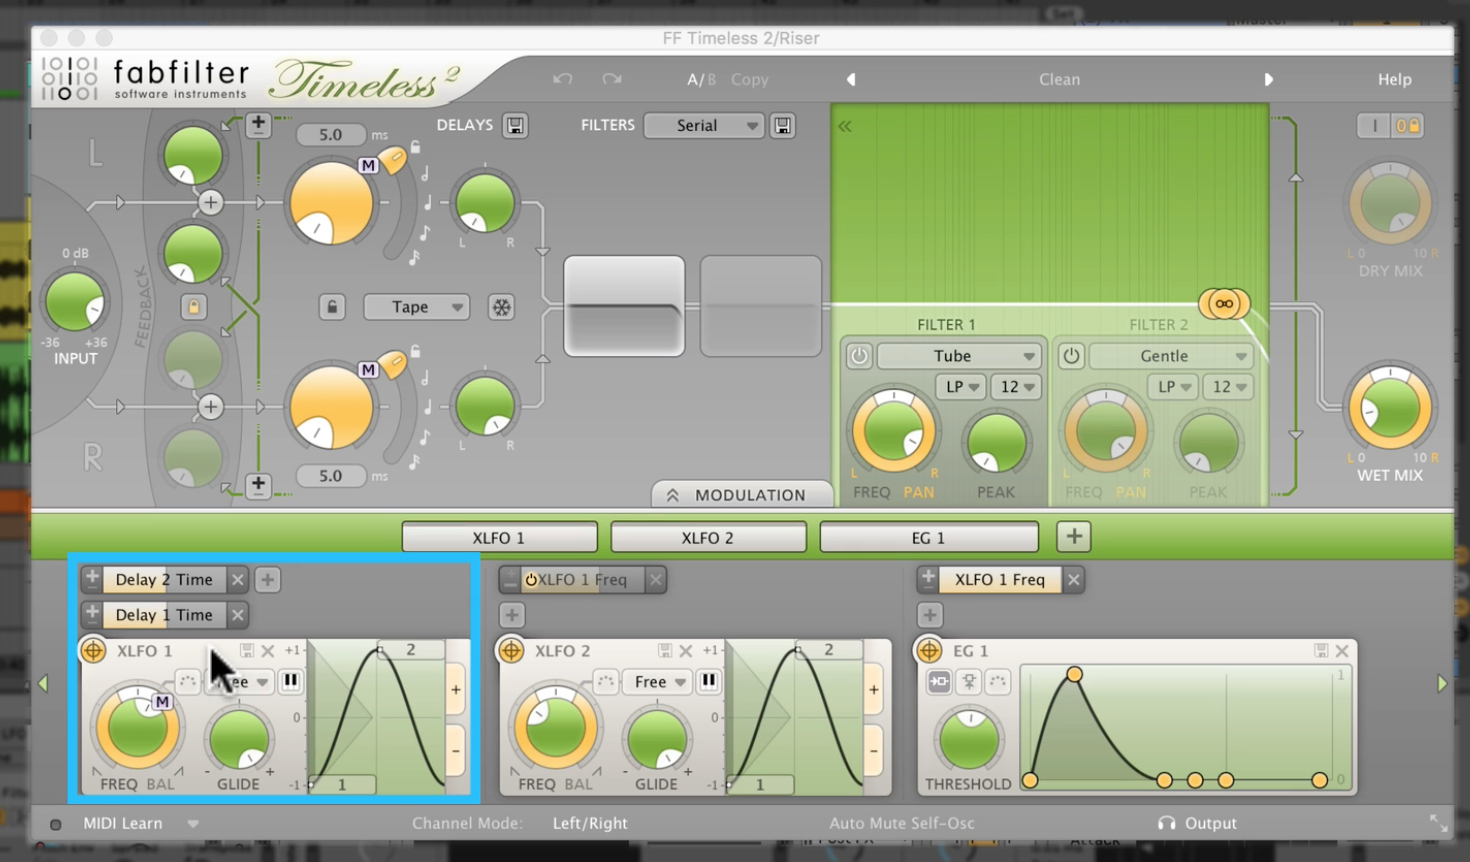 Fabfilter Timeless 2 - Create a riser with delay